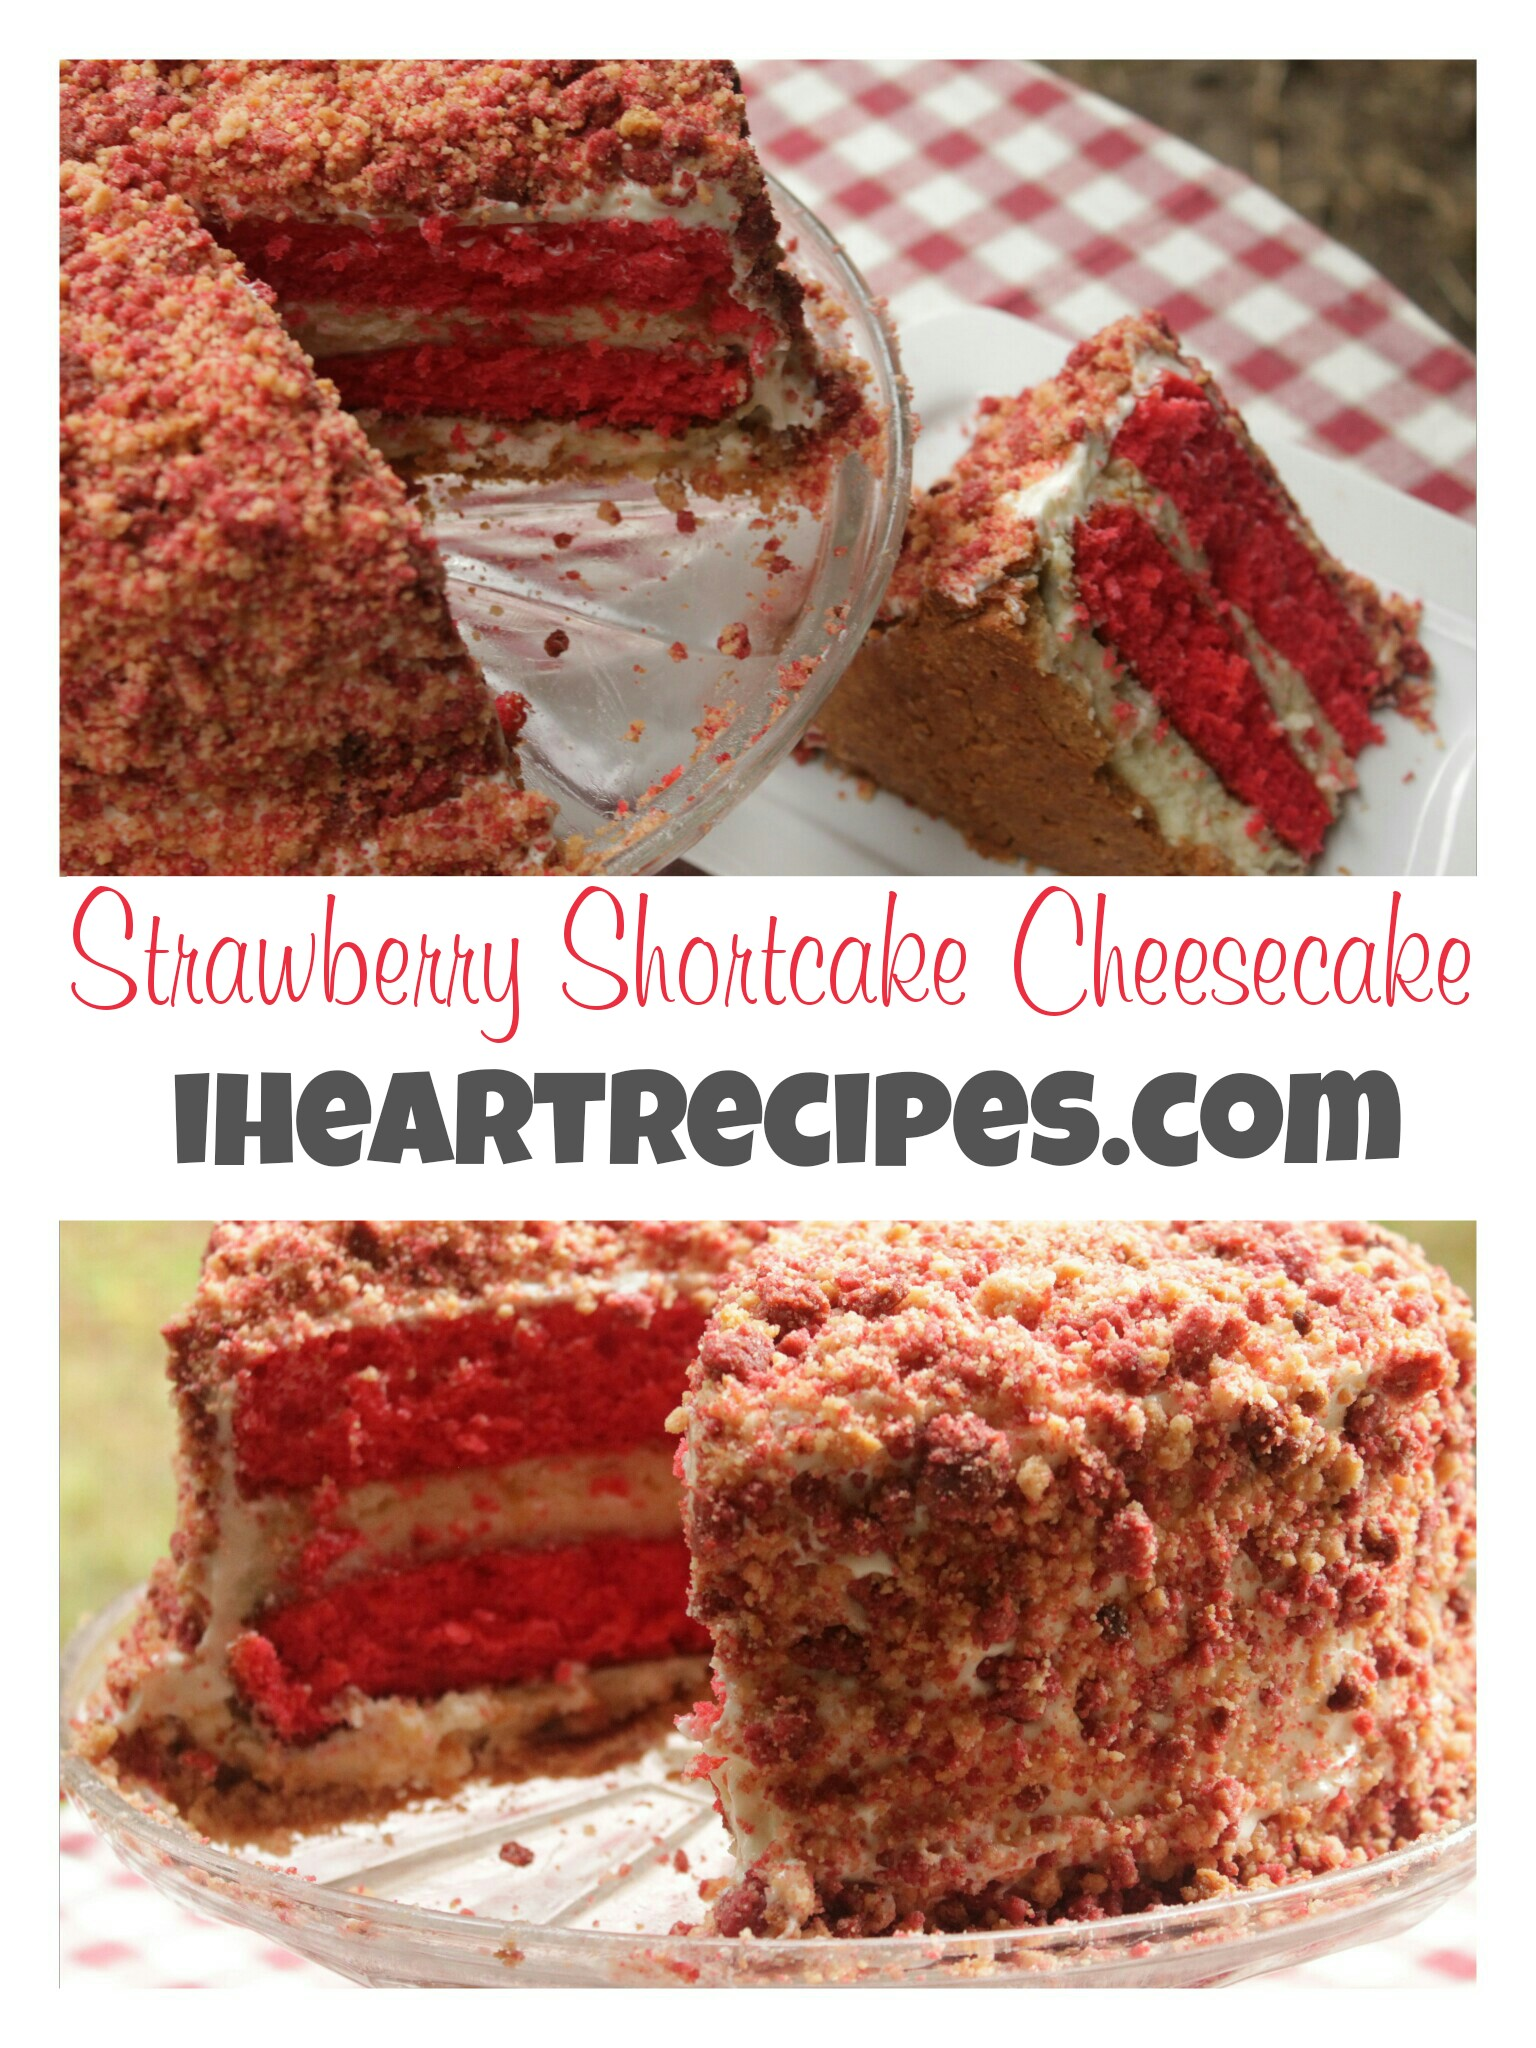 Learn how to make Strawberry Shortcake Cheesecake from IHeartrecipes.com